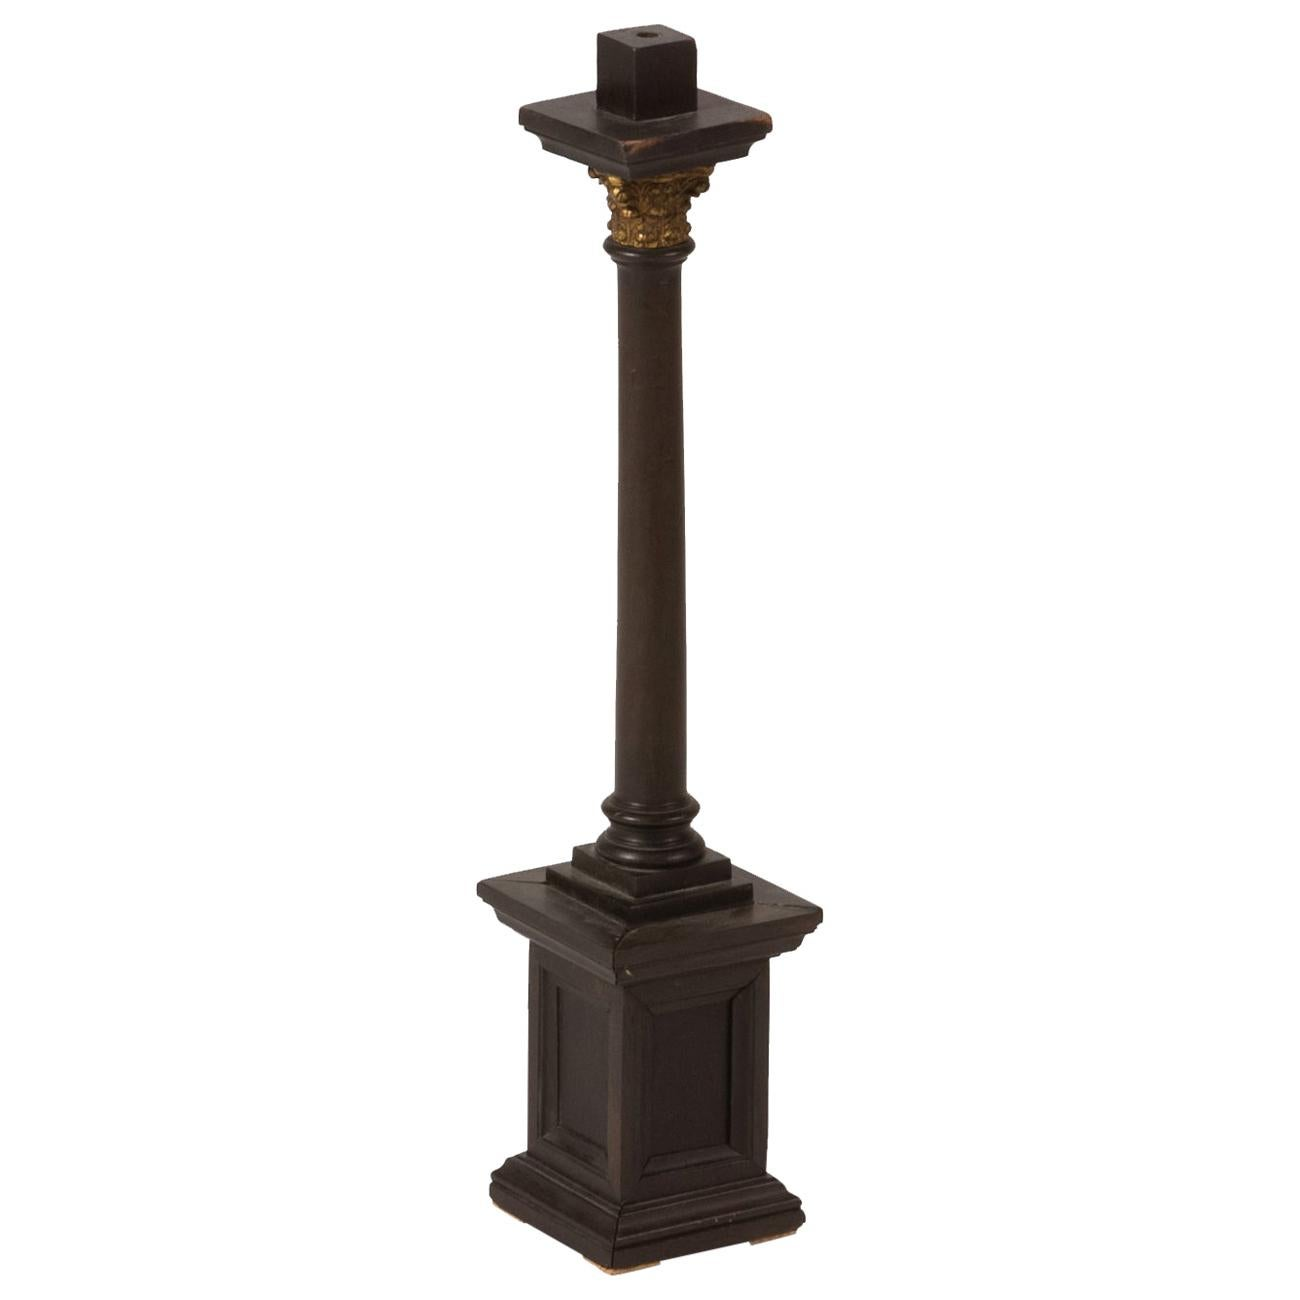 Late 19th Century Wooden Column Model from France